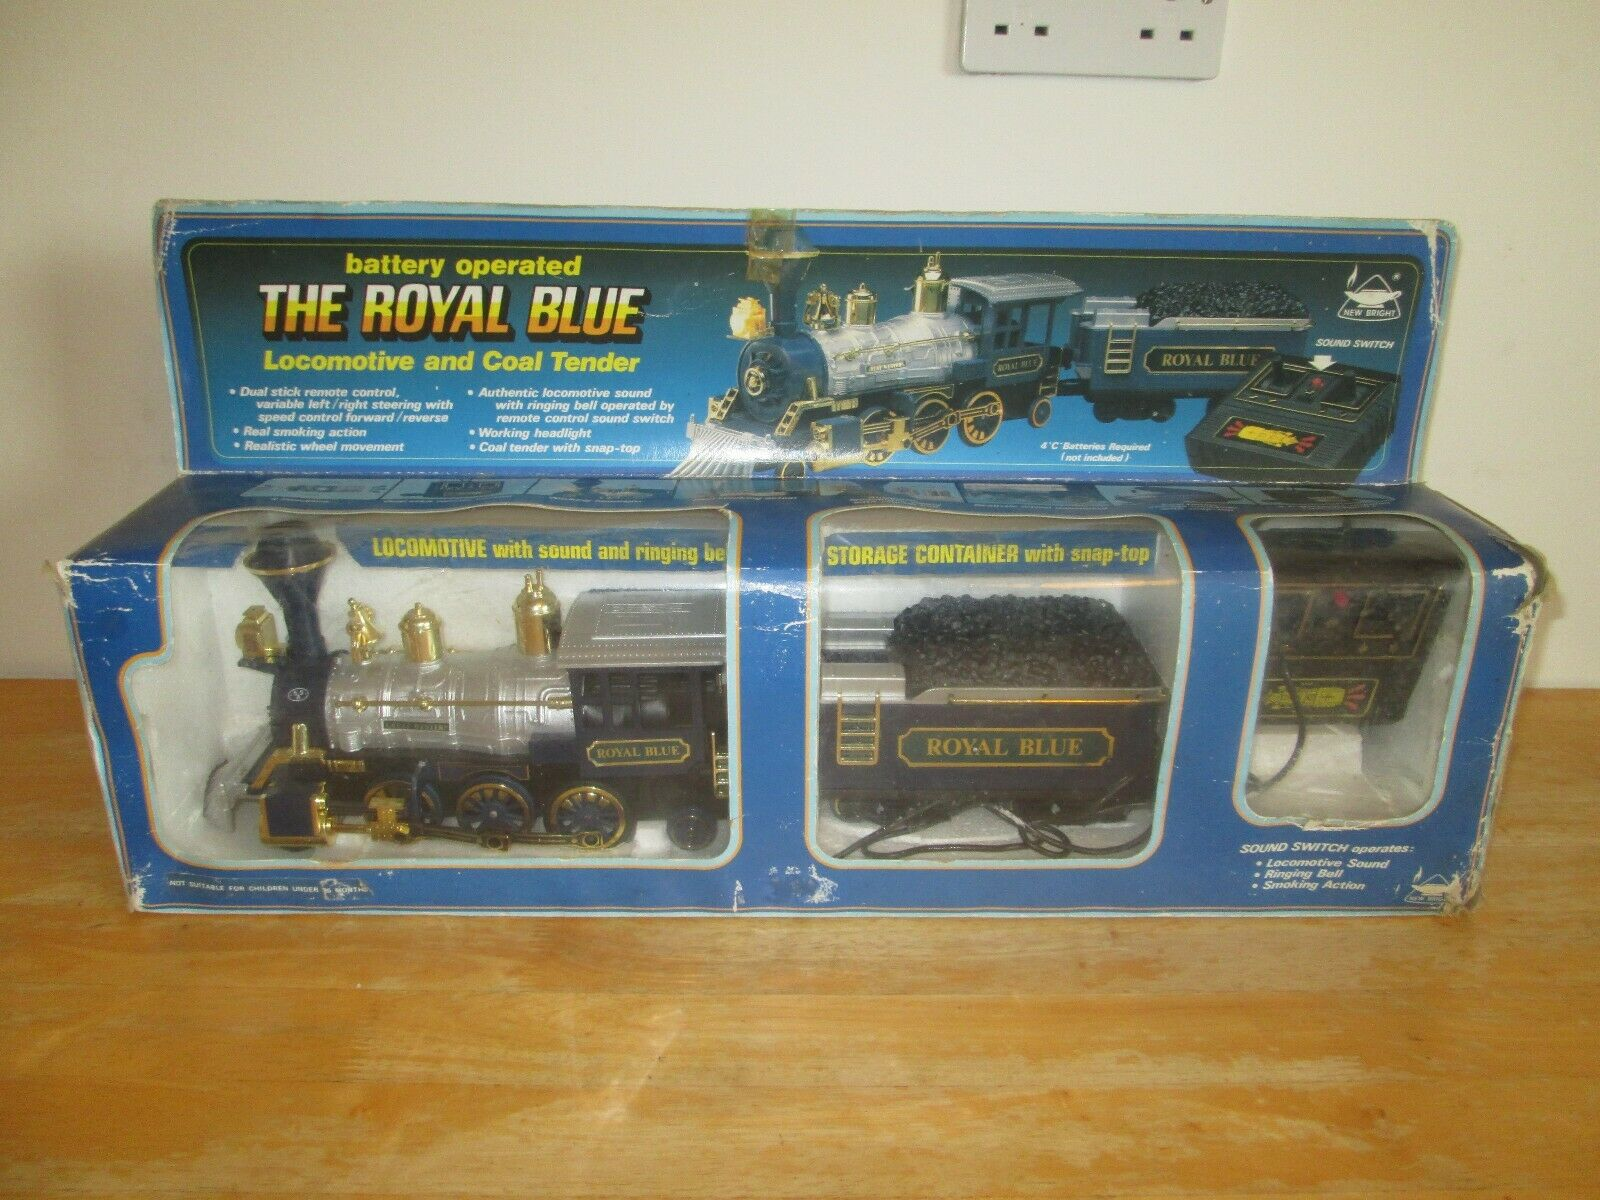 Nuovo  Bright - The Royal blu Battery Operated Locomotive e Coal Tender - Rare  fantastica qualità